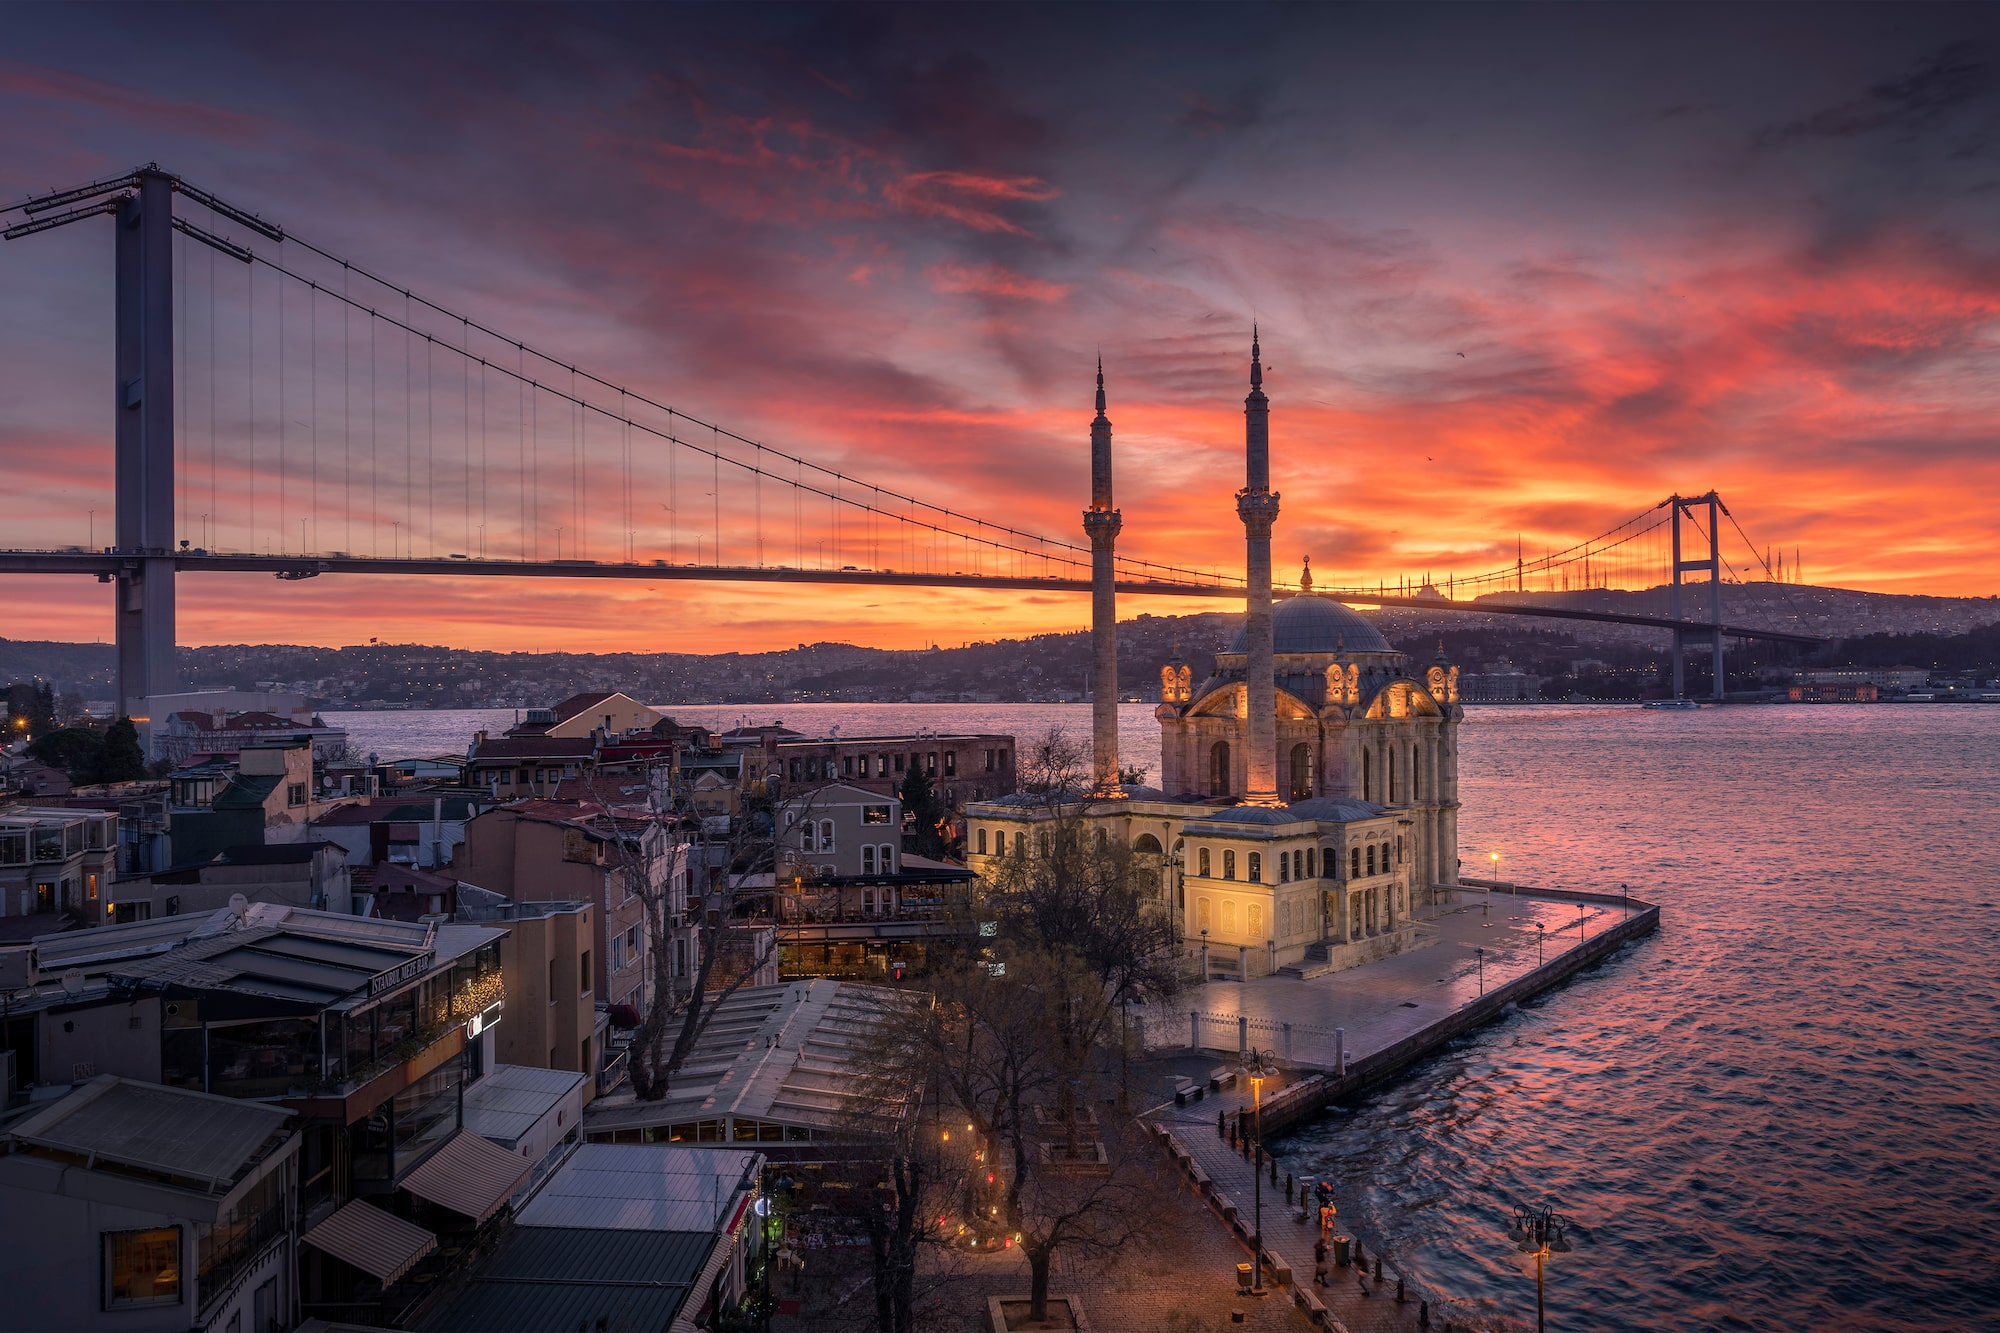 ilhan eroglu sony A6600 sunset over the bosphorous in istanbul with the bridge spanning the frame